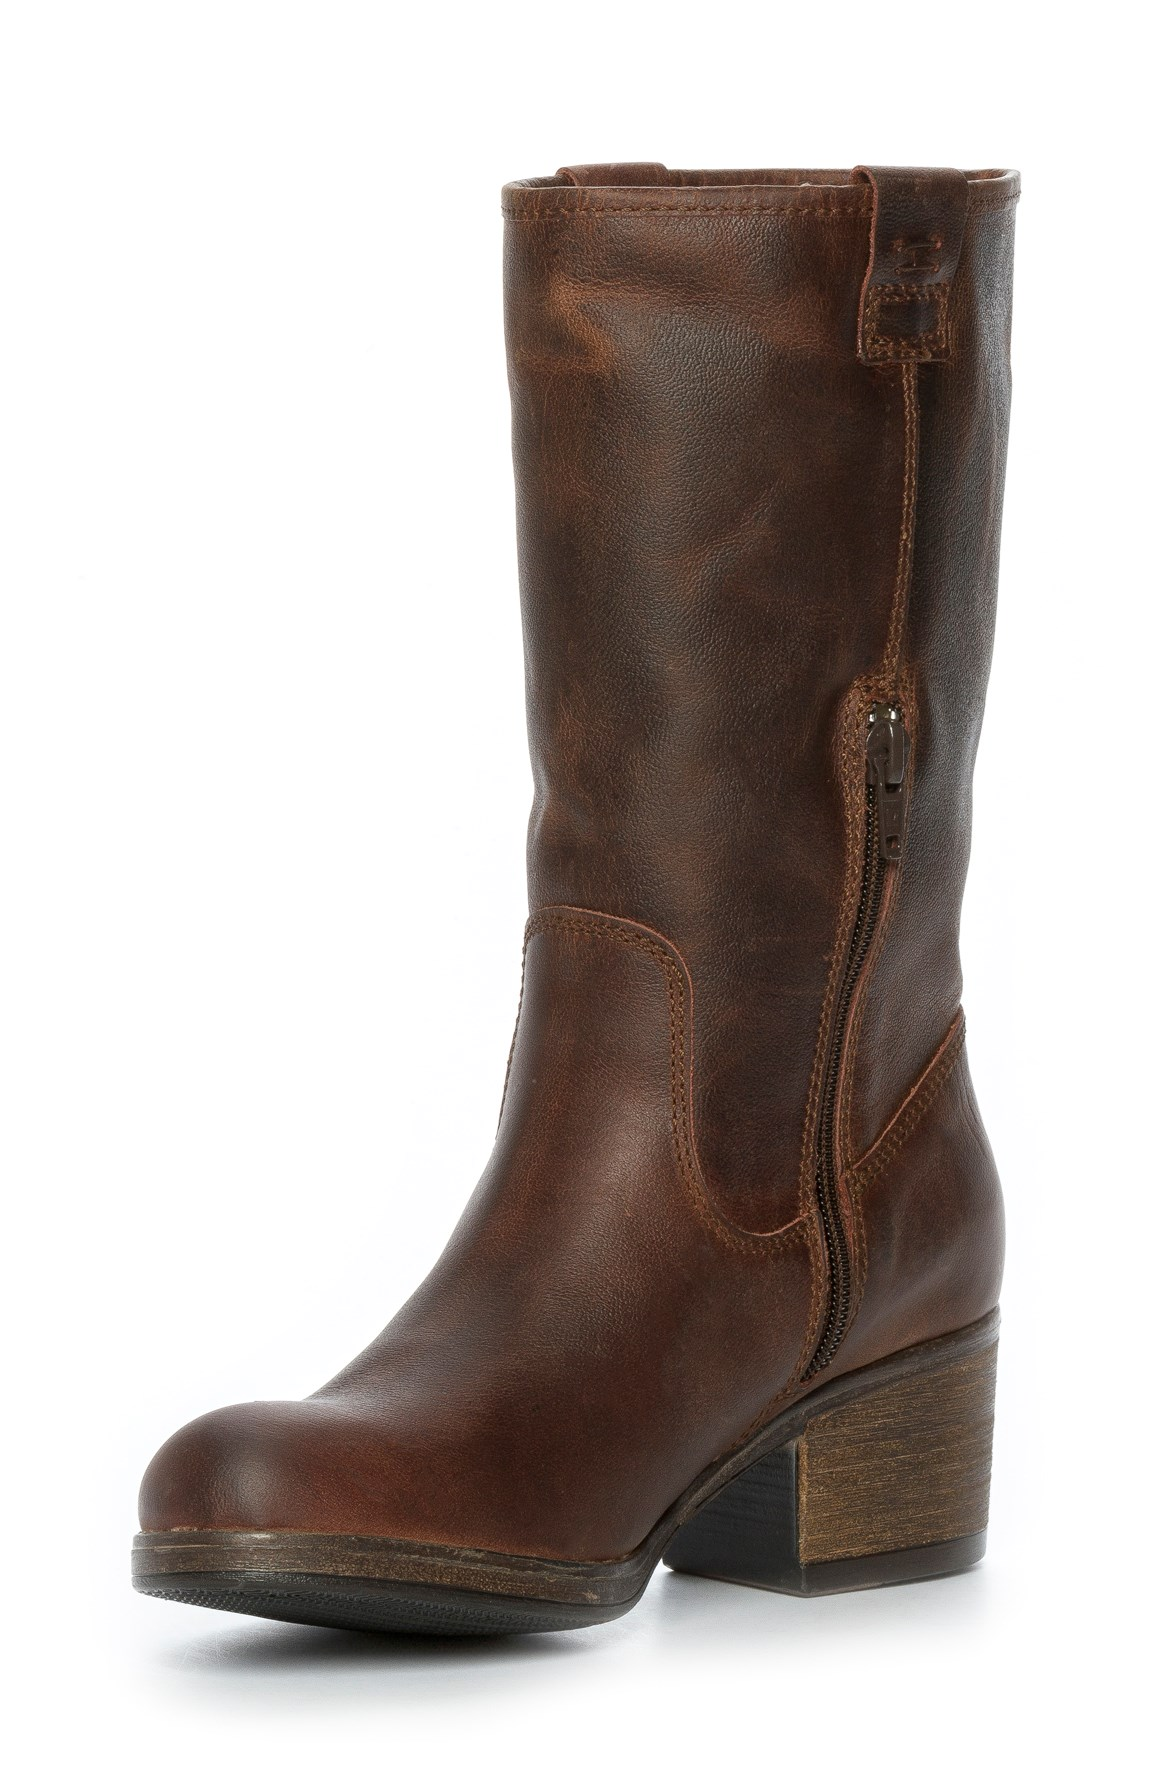 Bull Boxer Boots - Bruna 306468 feetfirst.se